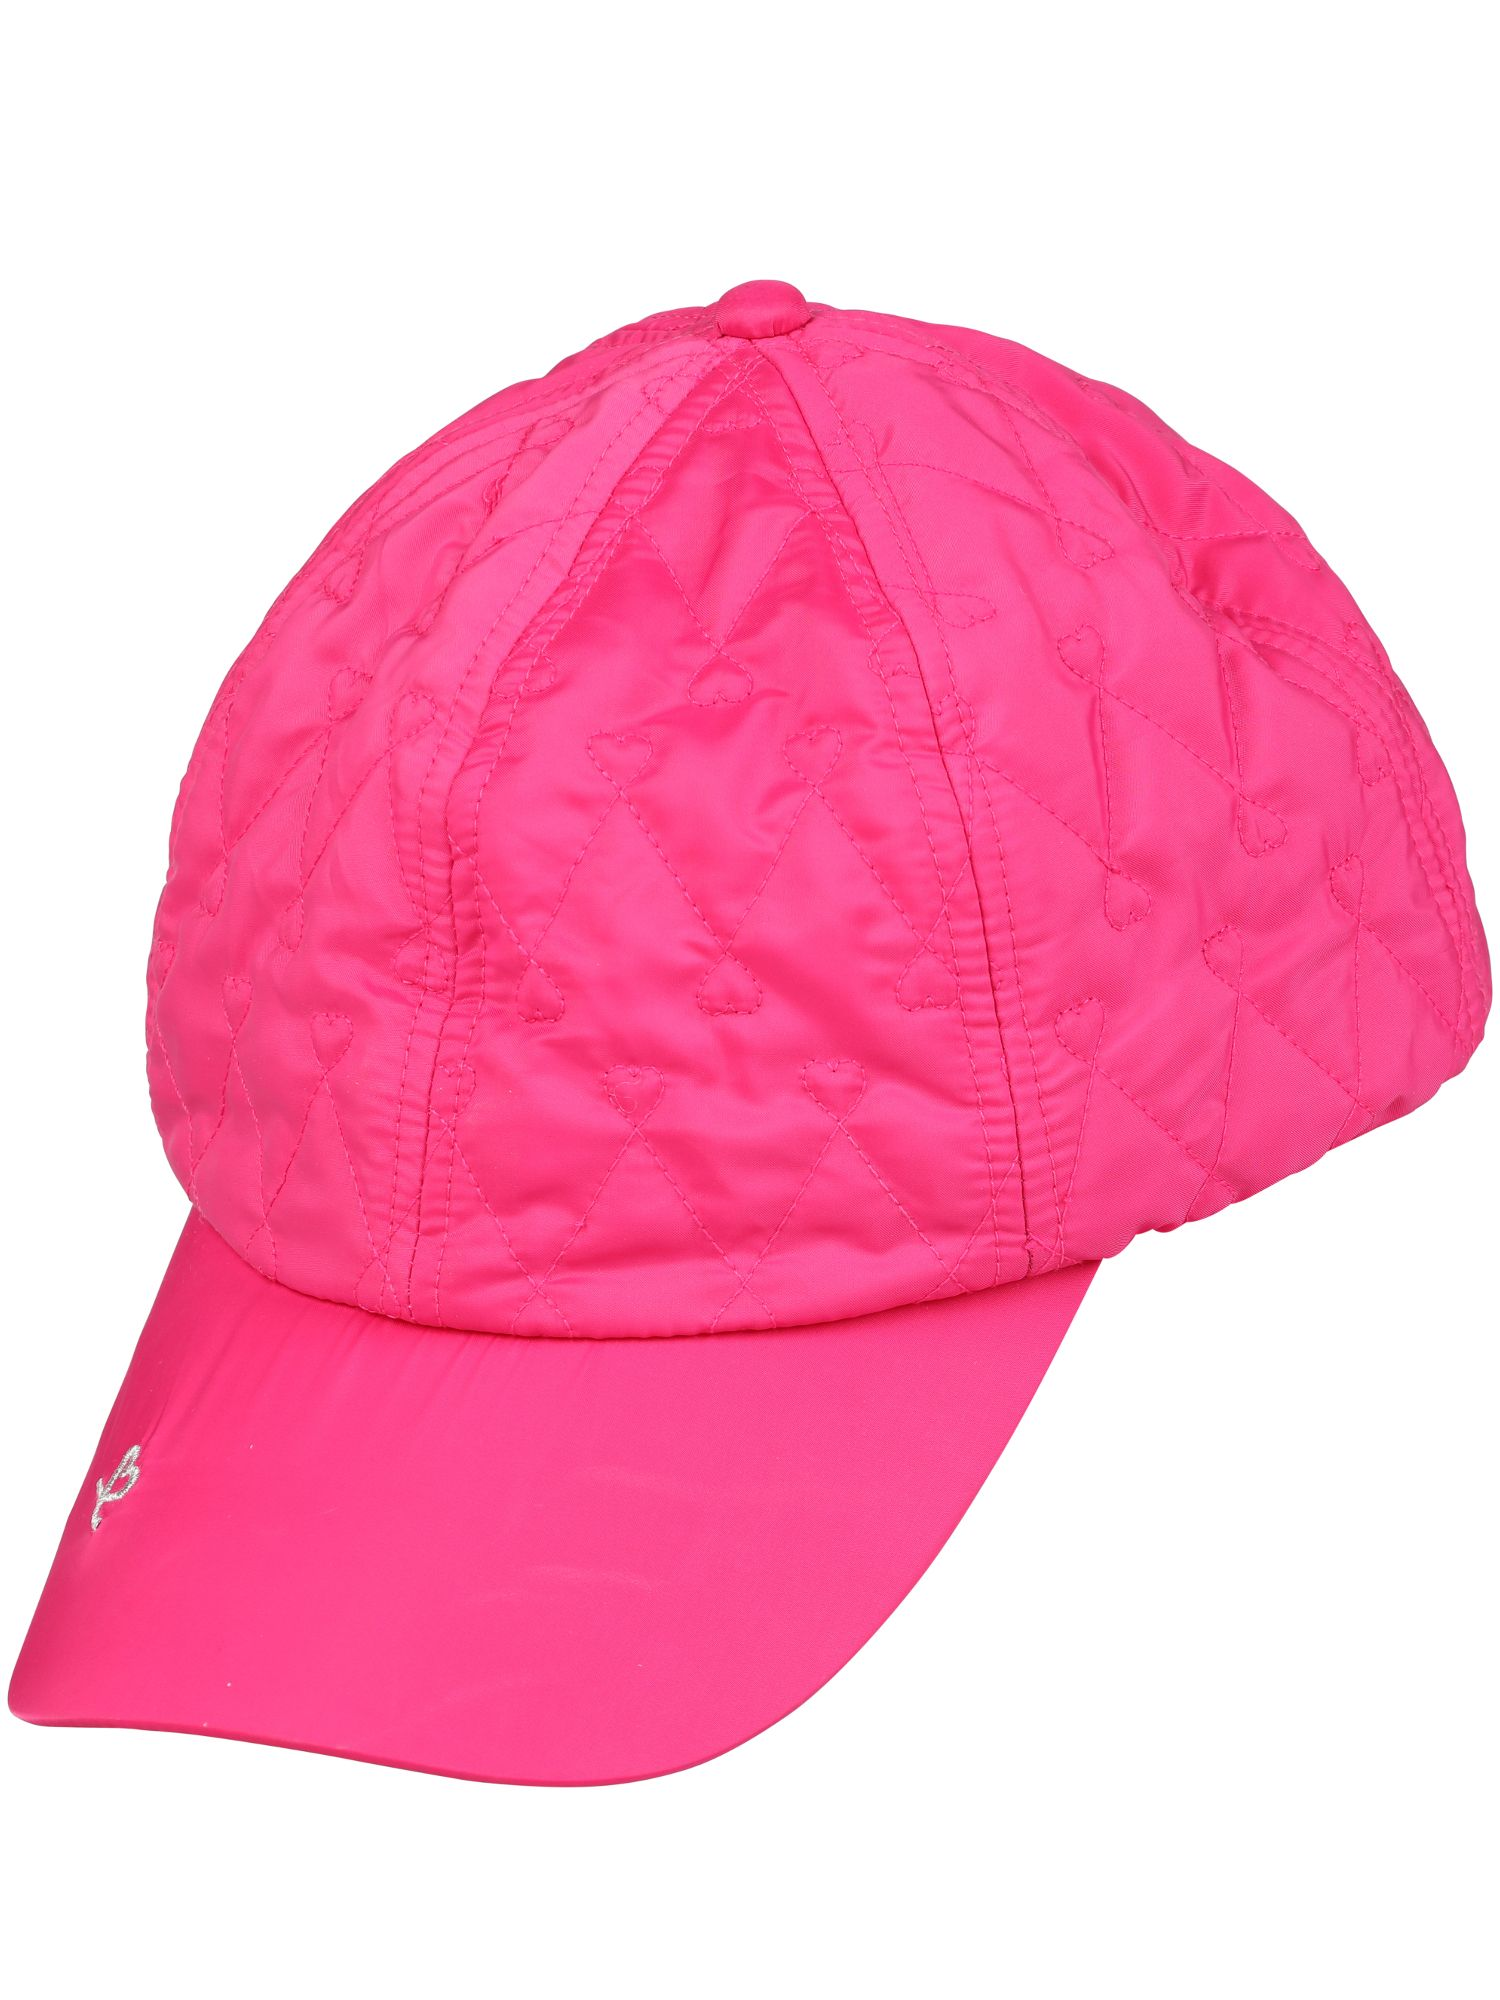 Daily Sports Jolie Hat, Red